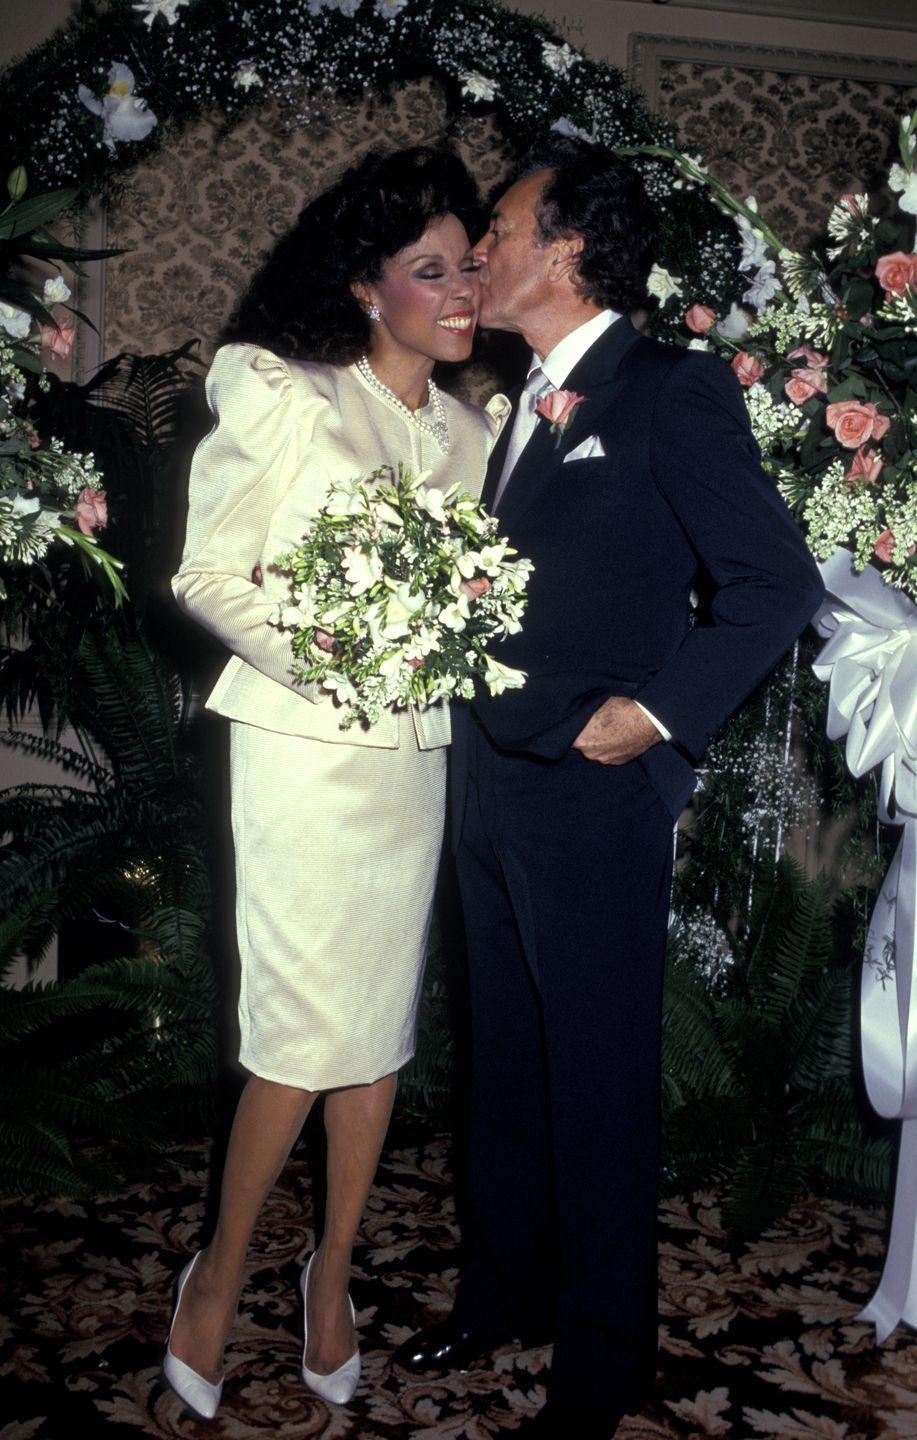 <p>Diahann Carroll was married three times, engaged four, before tying the knot to singer Vic Damone in 1987. The actress wore a skirt suit made in an ivory satin fabric for the ceremony at the Golden Nugget Casino in Atlantic City. They were married until 1996. </p>